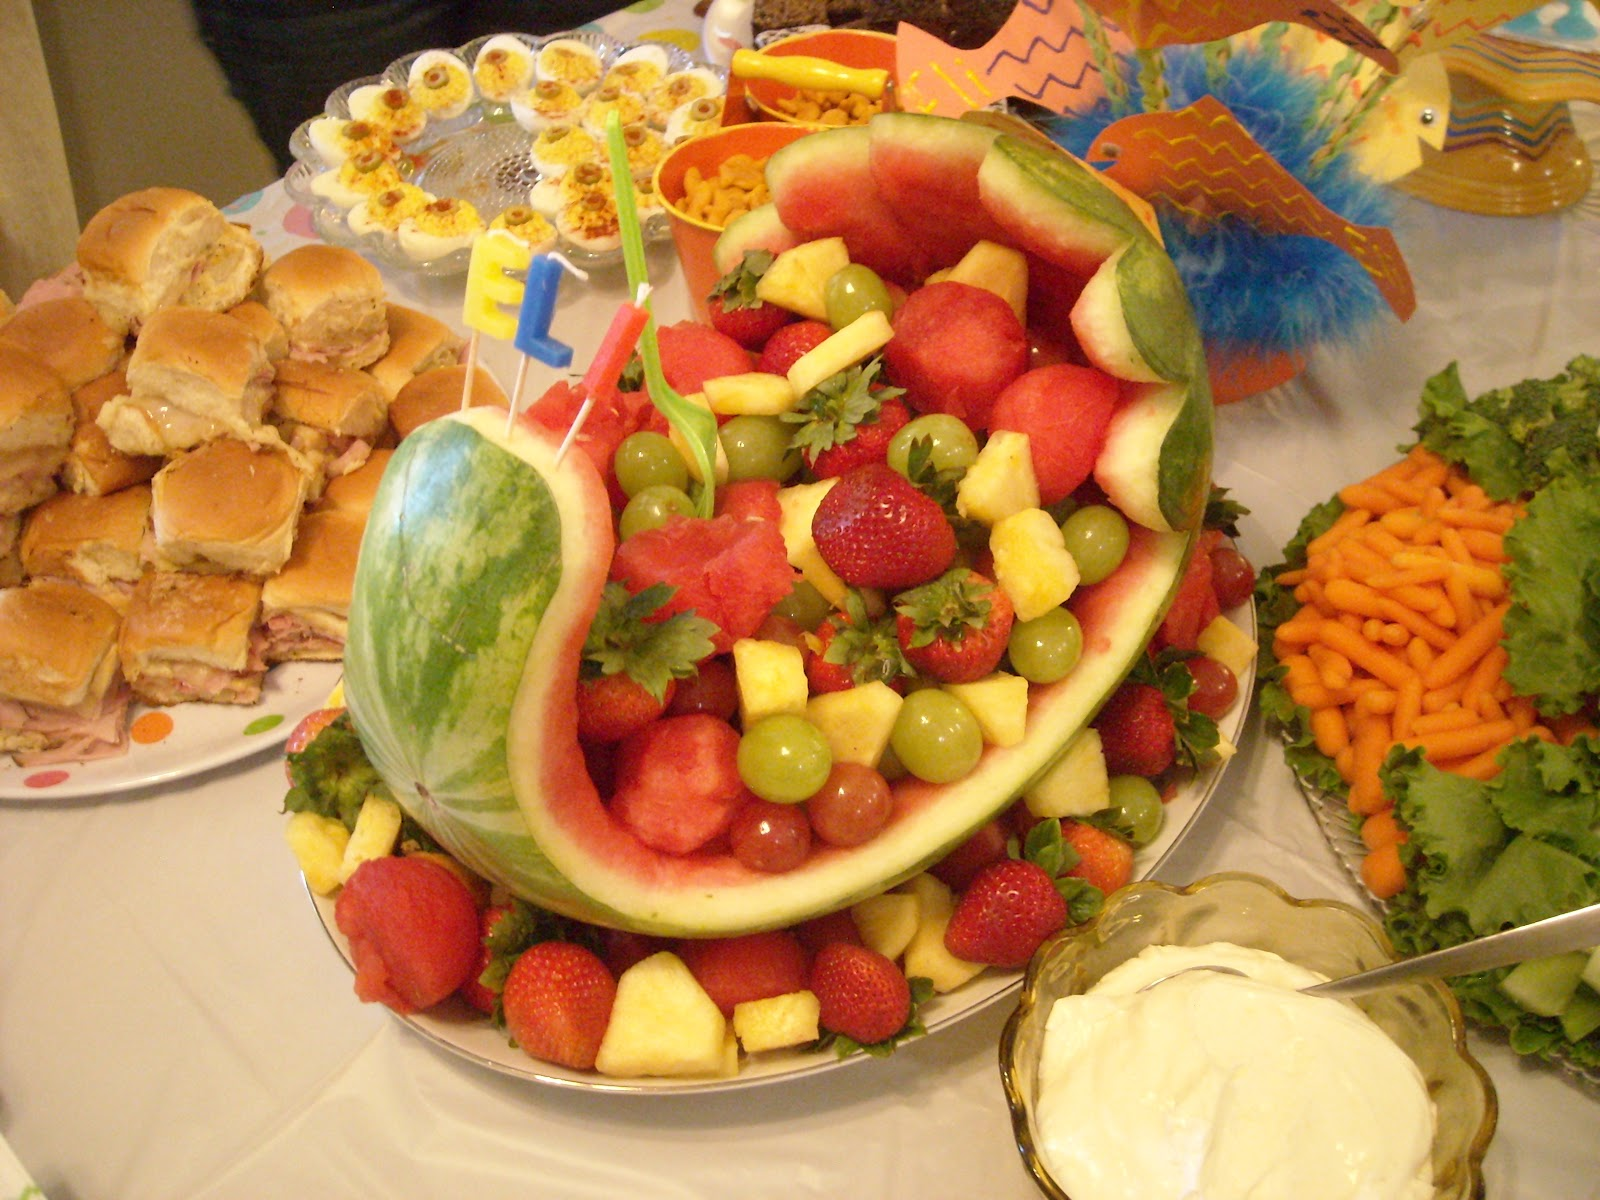 next we had the baby carriage fruit bowl